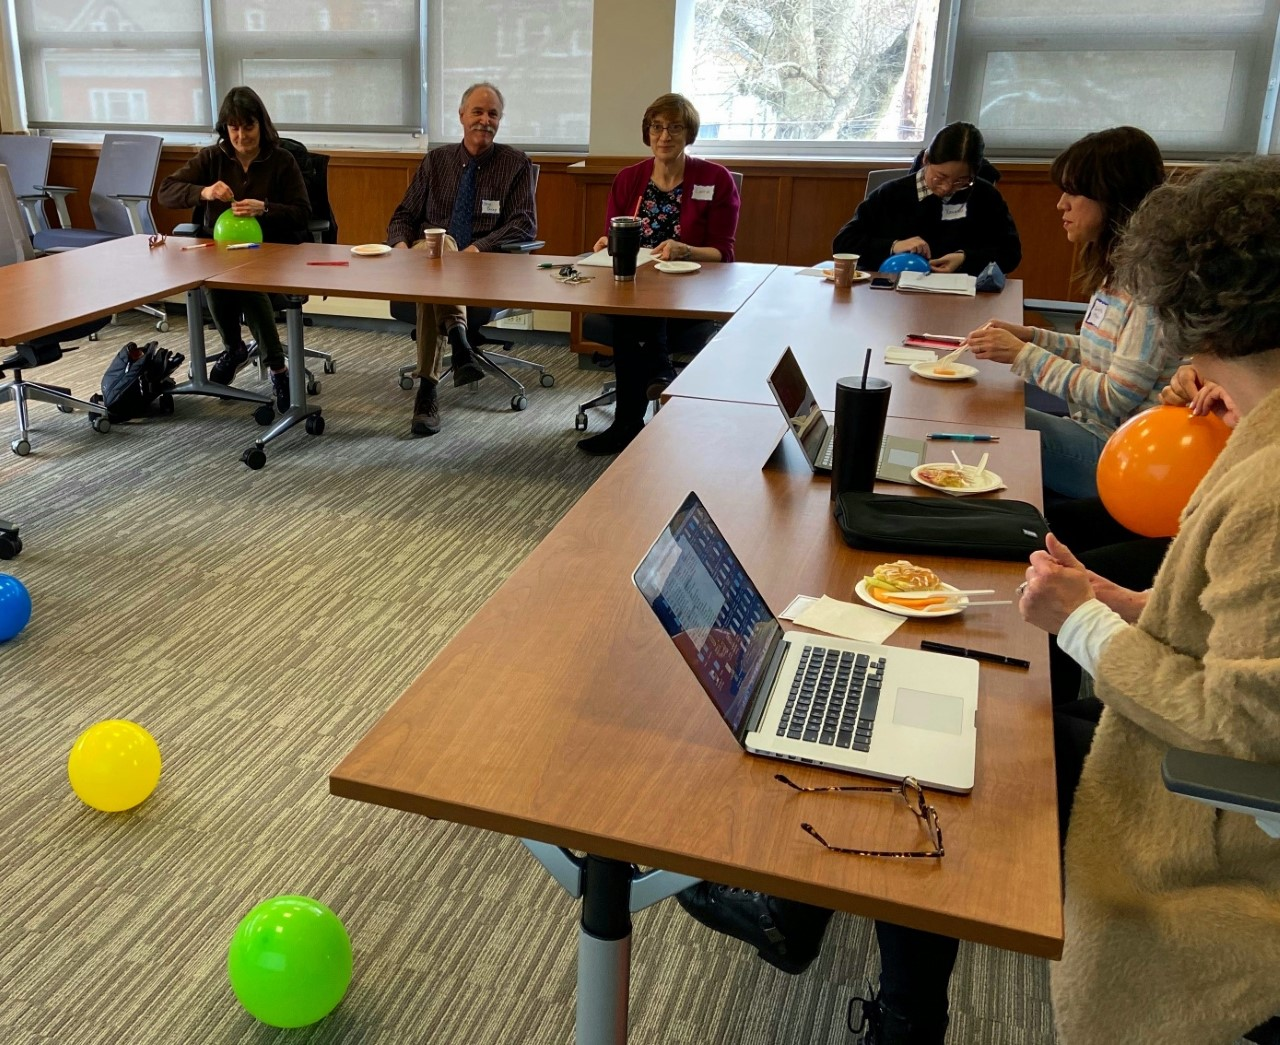 Faculty engaged in balloon exercise during workshop